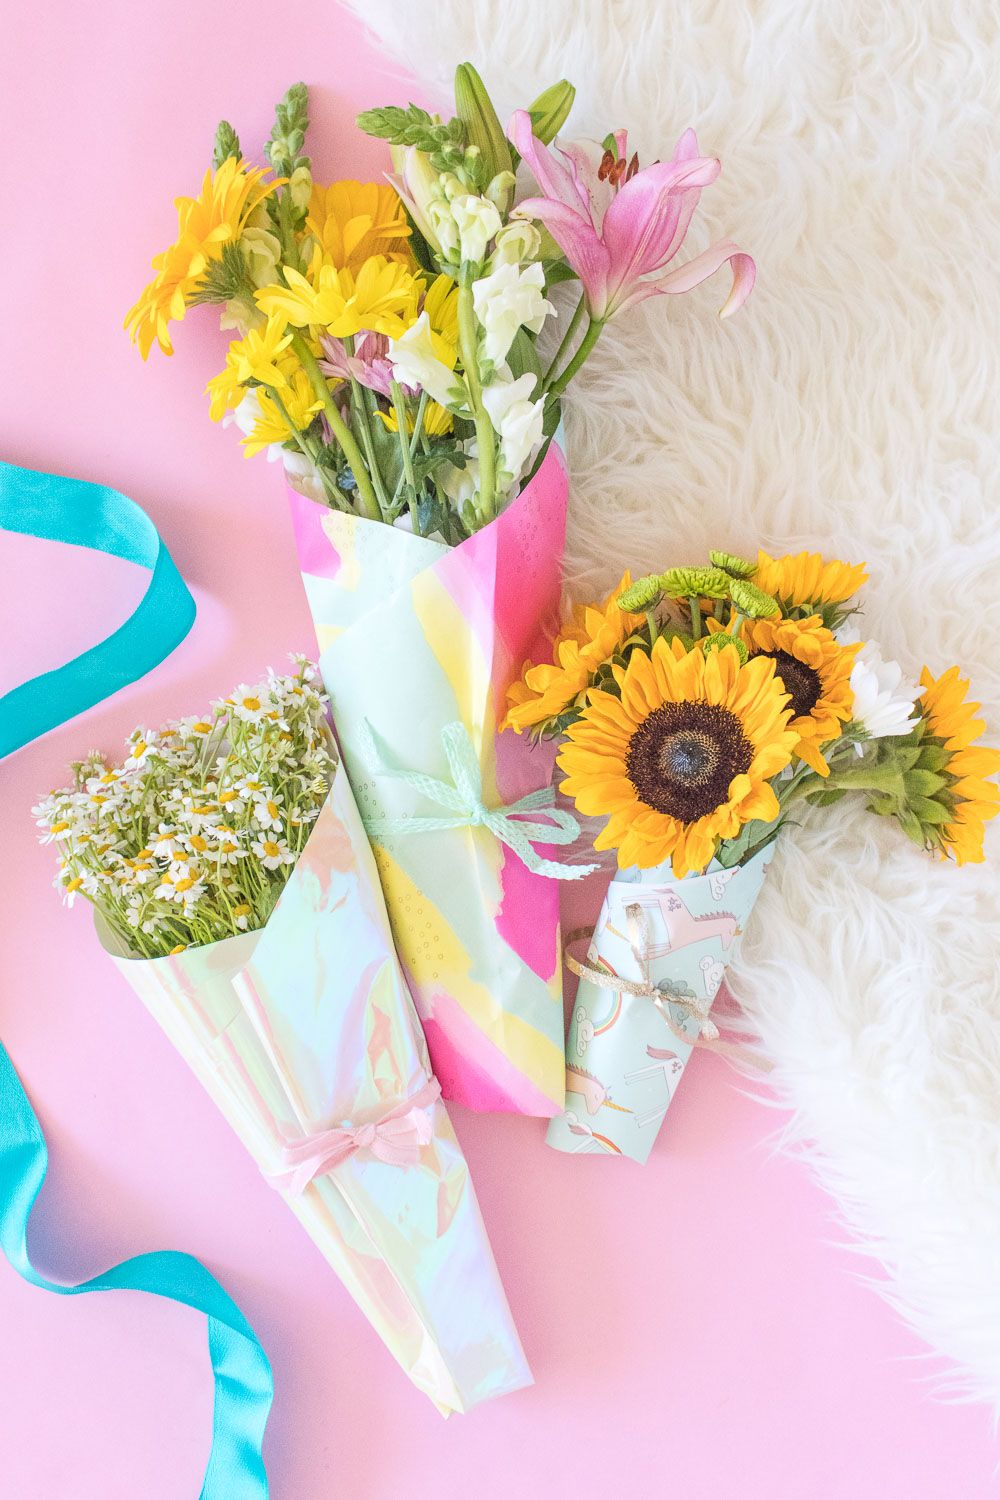 Flower Bouquets - DIY Mother's Day Gifts